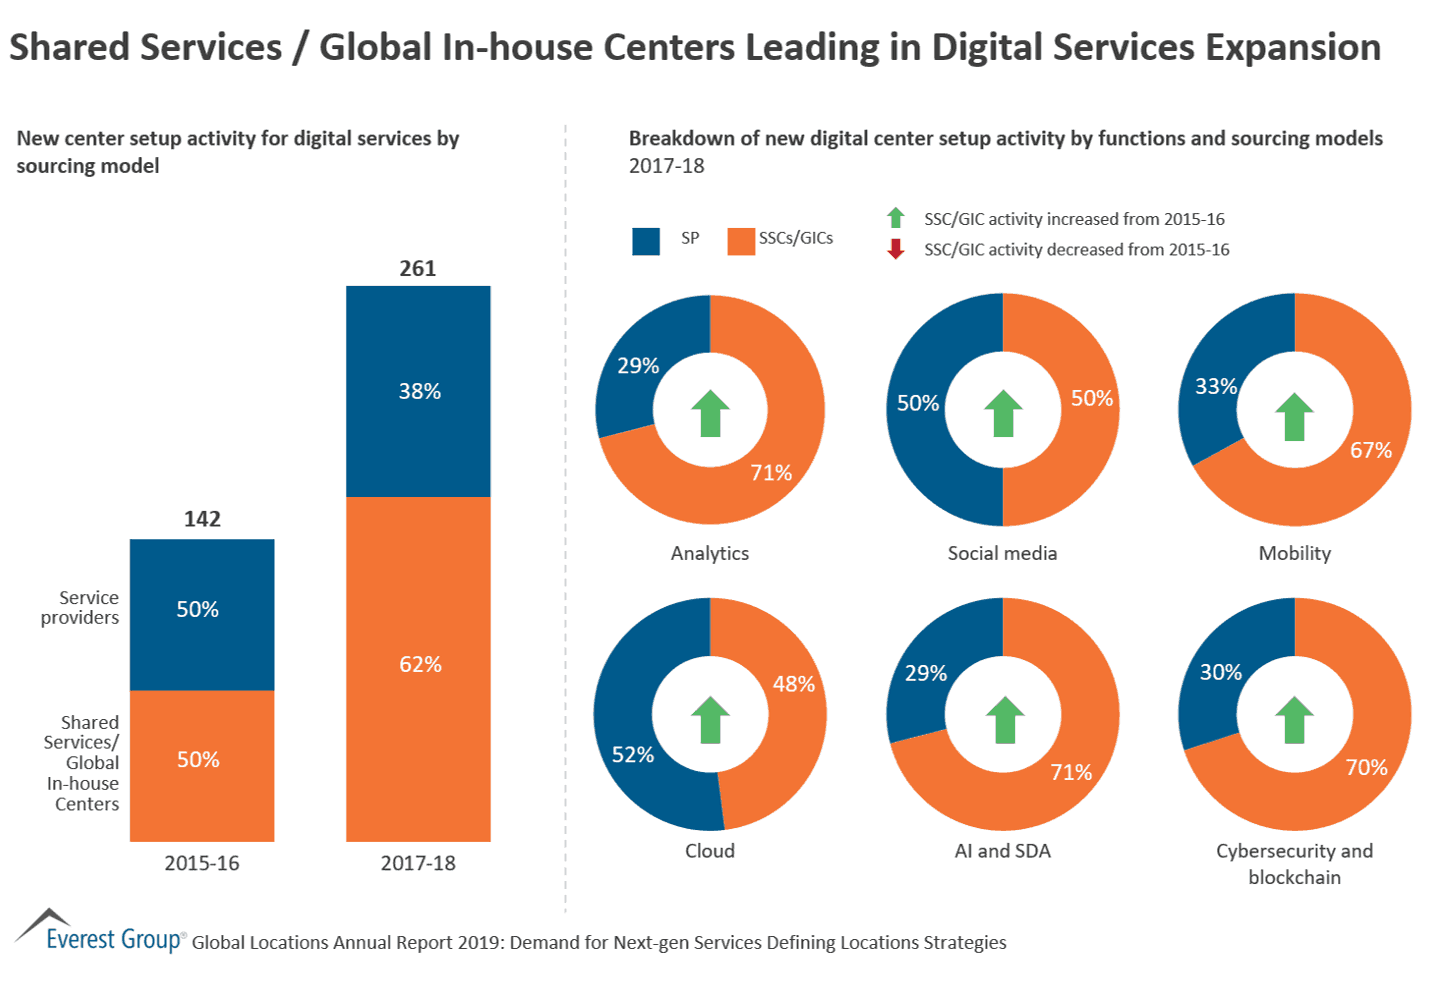 Shared Services / Global In-house Centers Leading in Digital Services Expansion